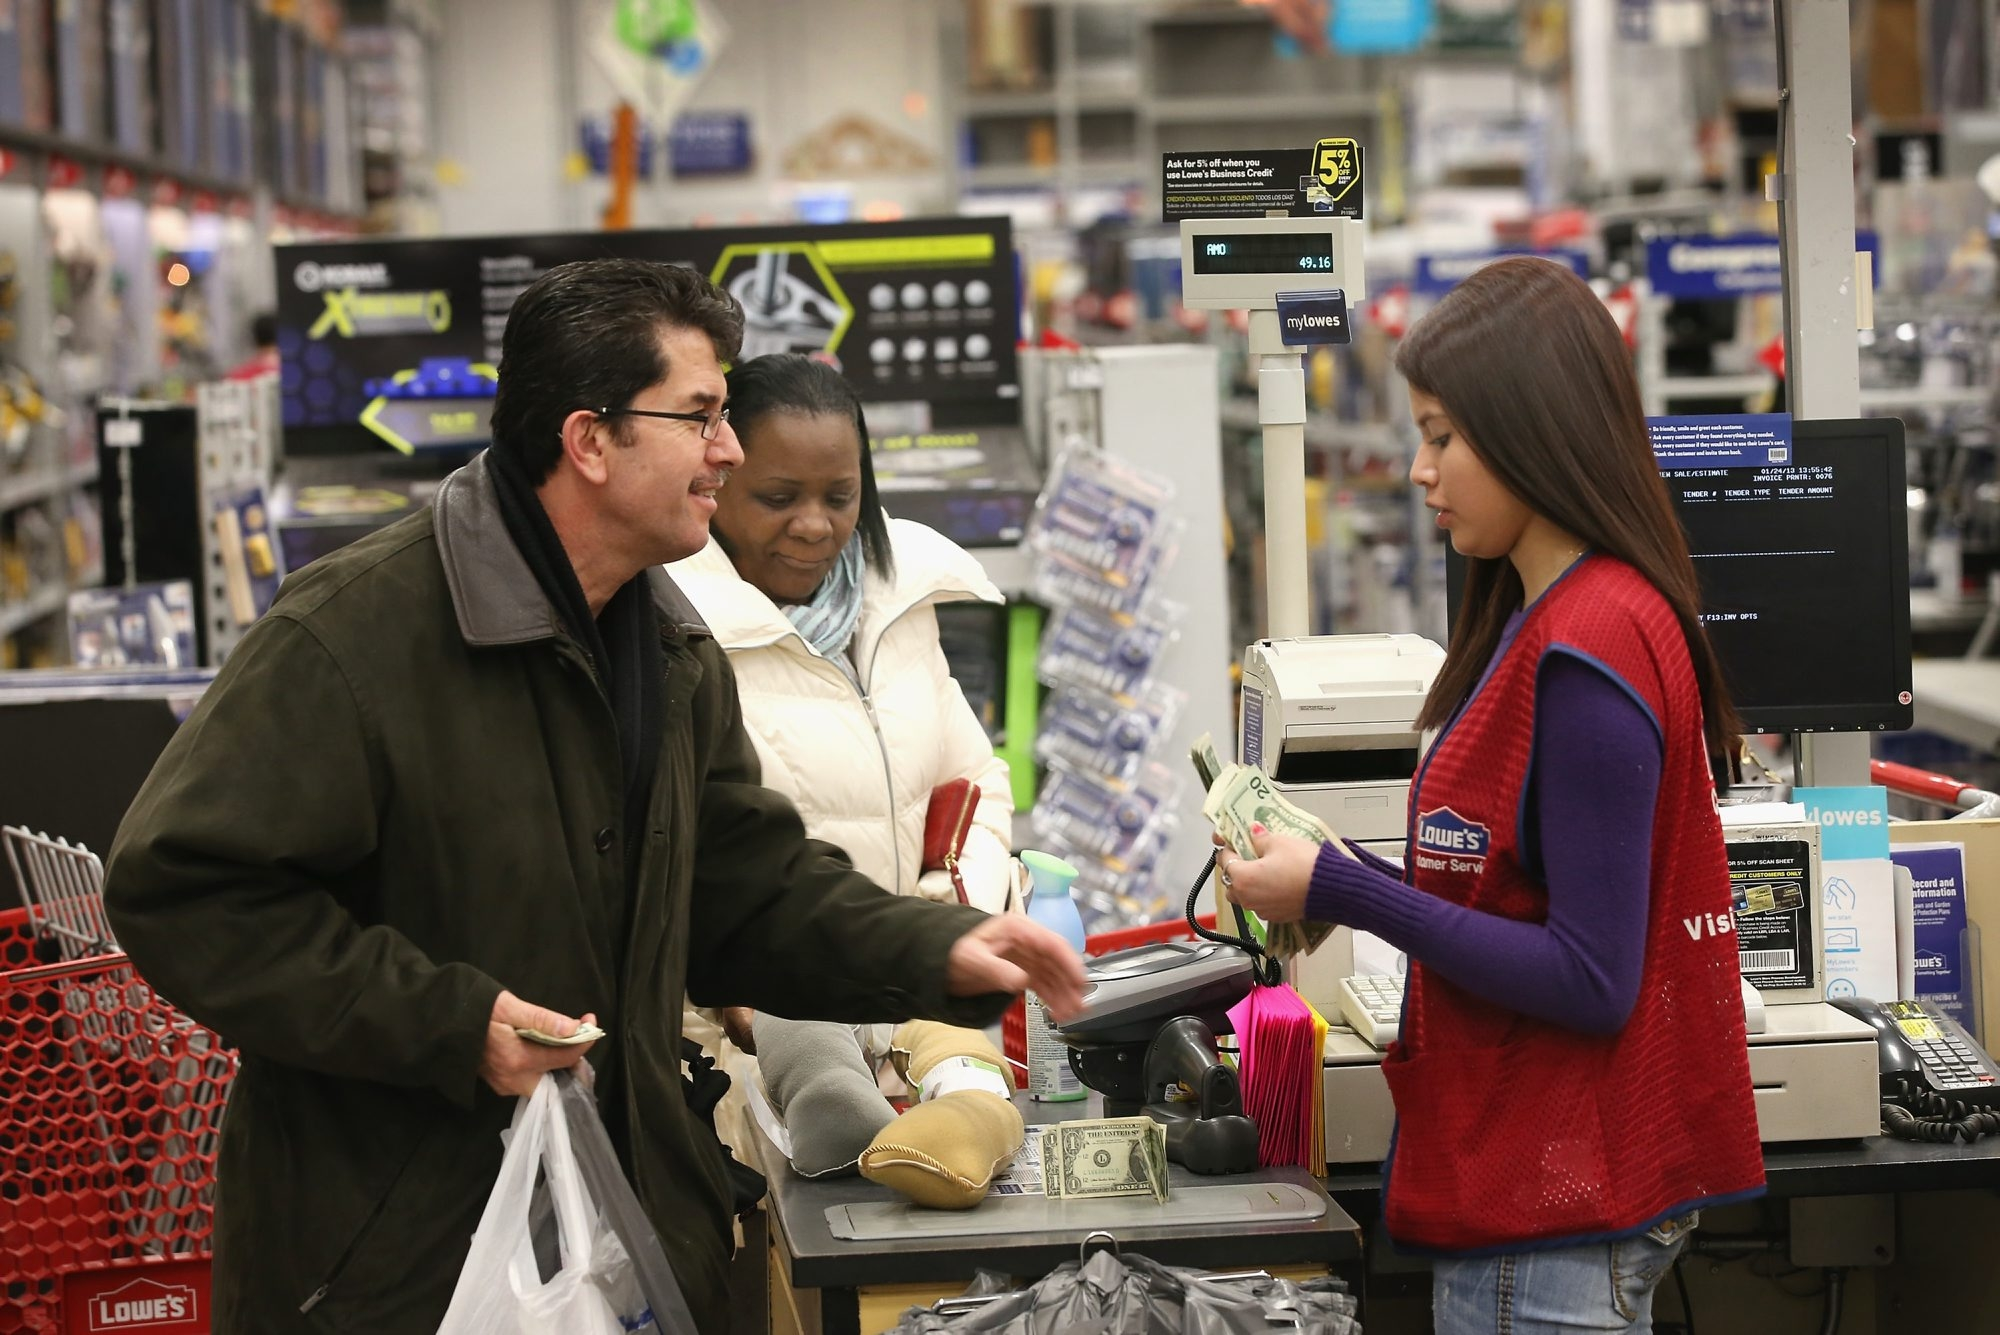 Home improvement stores, like Lowe's and Home Depot, are hiring now for their busy spring season. They need cashiers, sales and customer service associates, stockers and loaders.